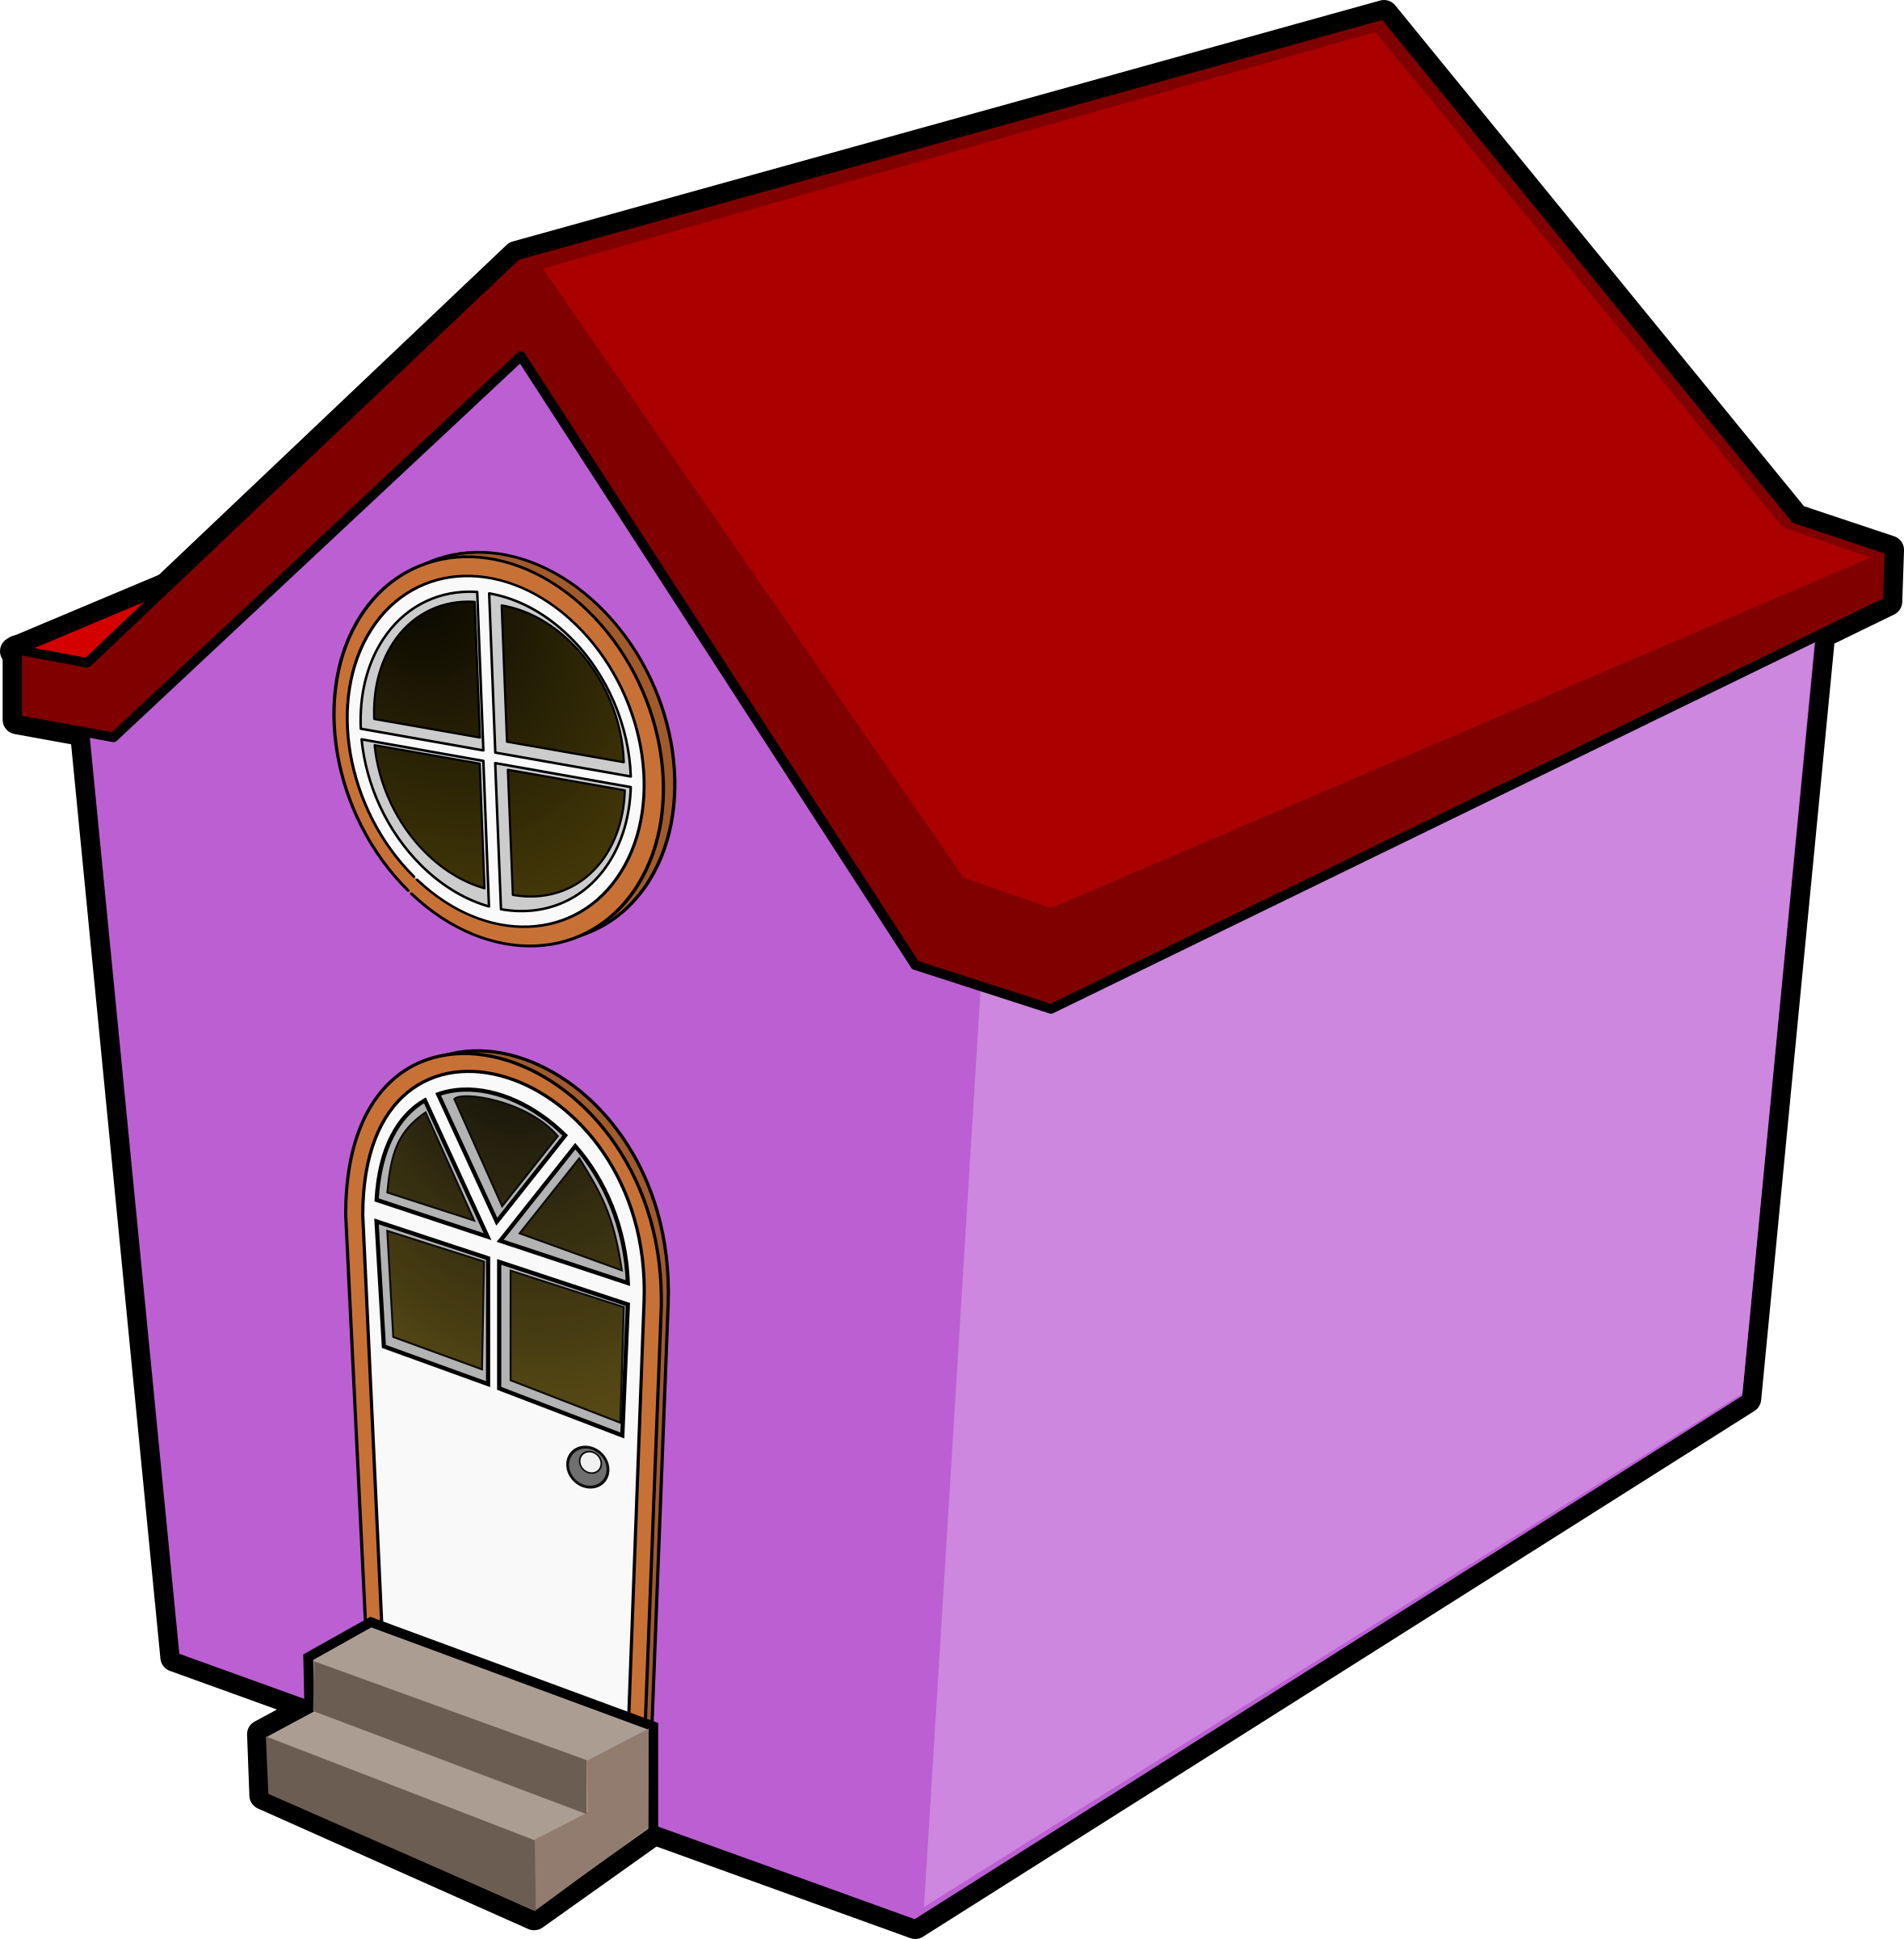 Clipart dog house vector freeuse stock Clipart - A Little Purple House vector freeuse stock